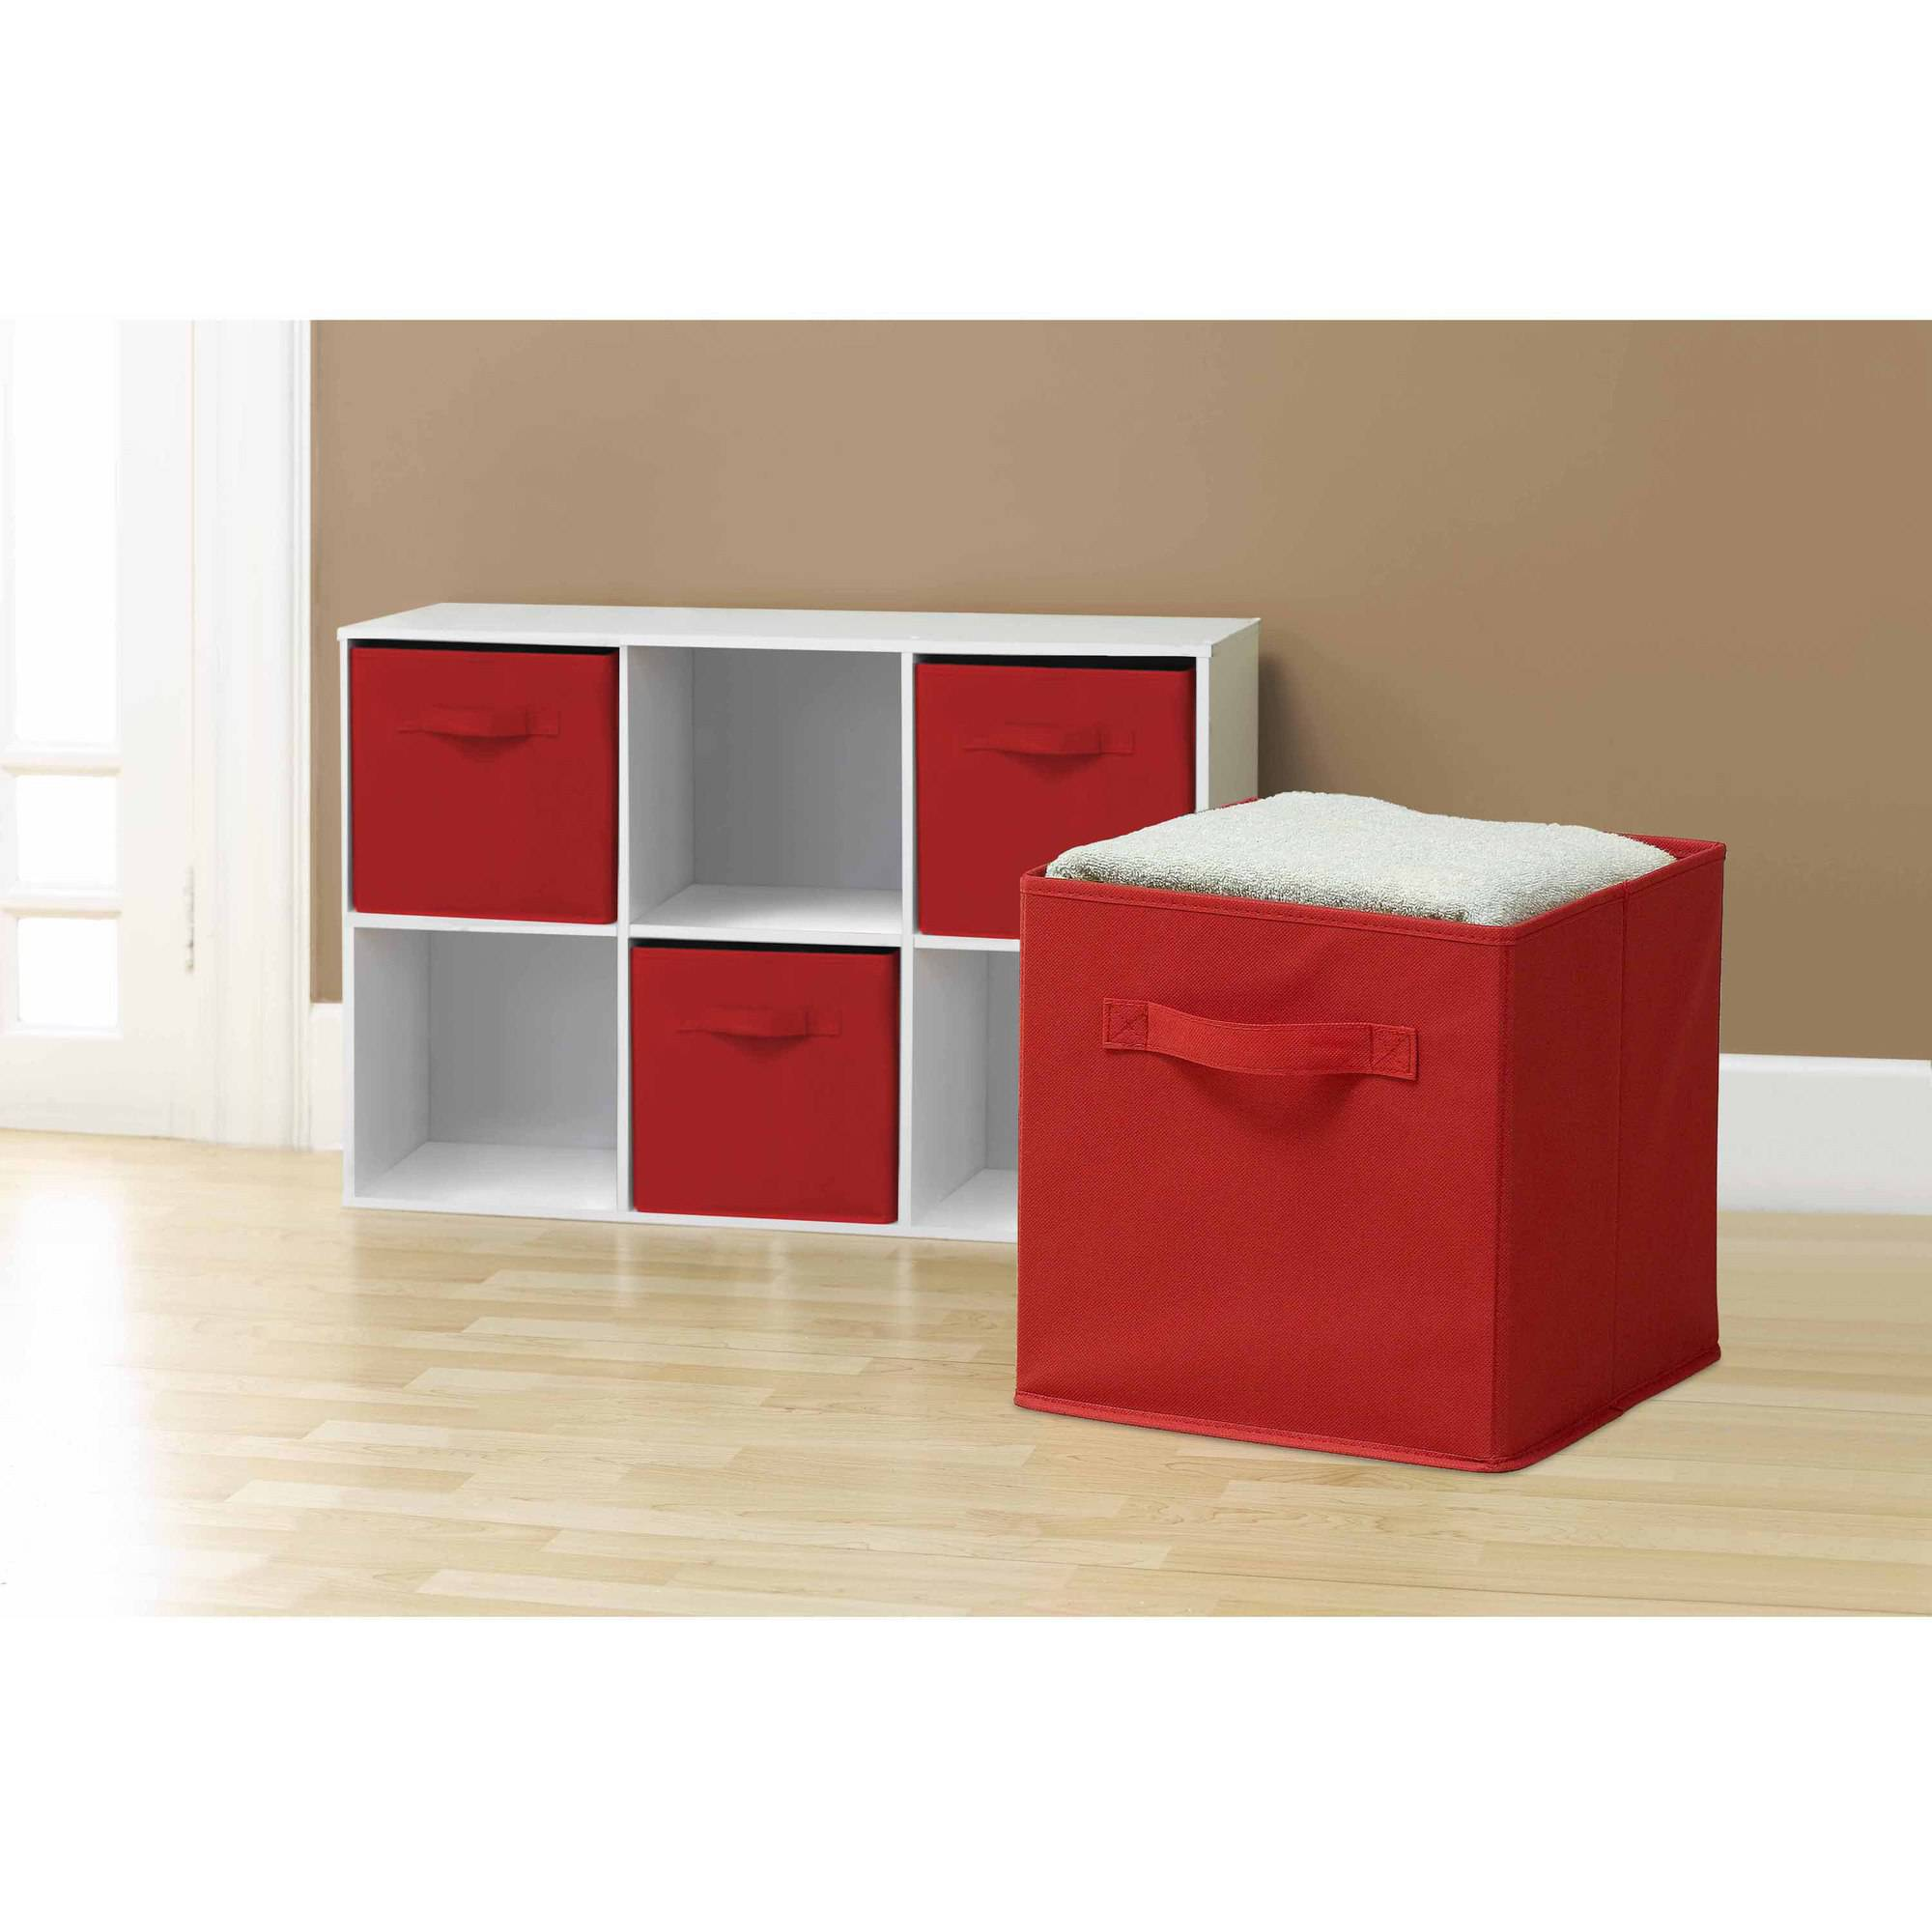 11x11 Storage Cubes Home Ideas